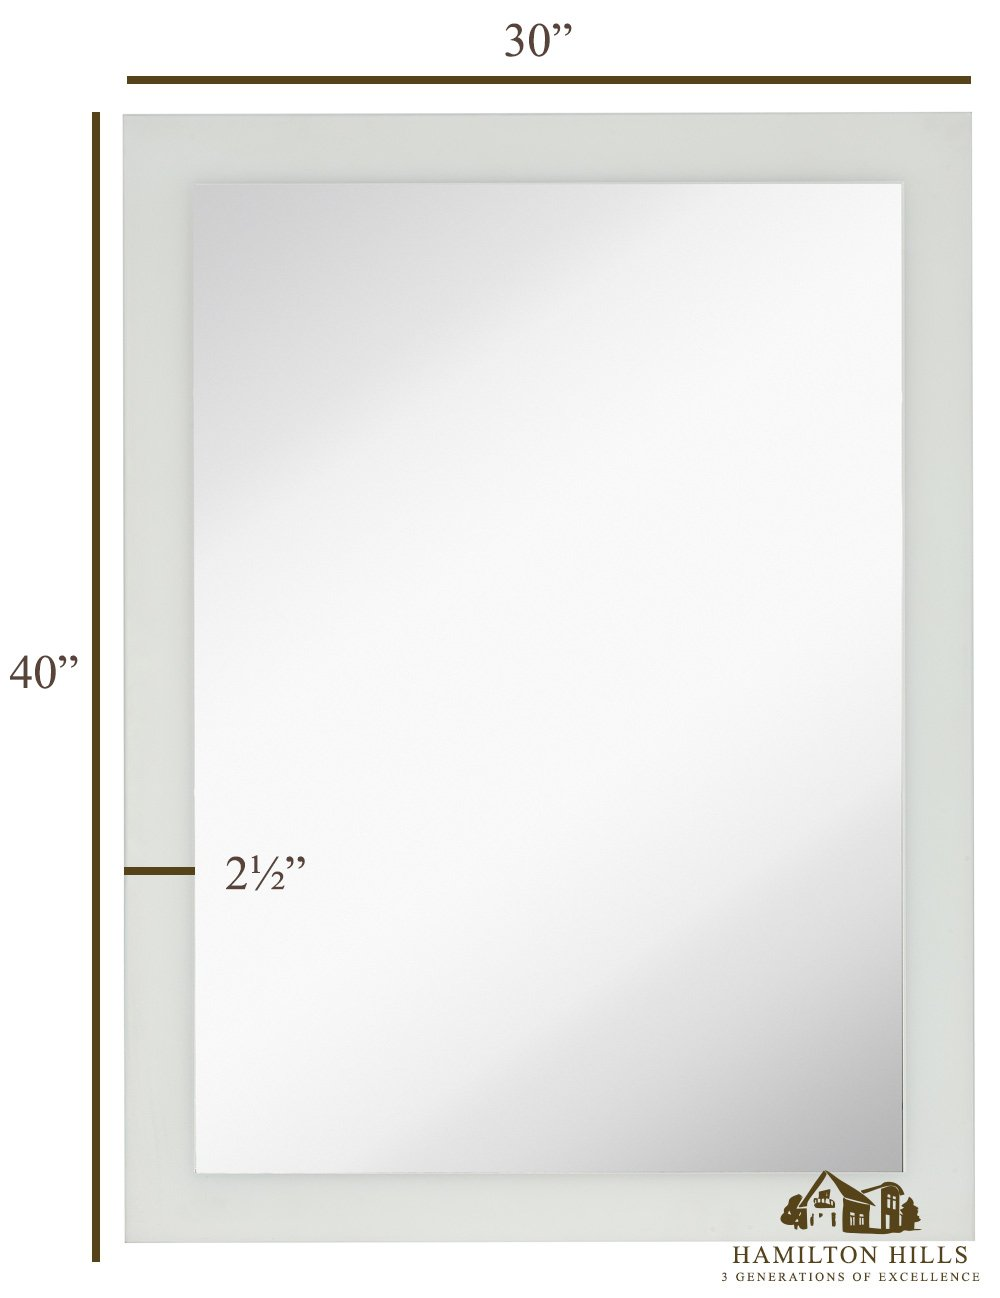 Large Frosted Edge Modern Rectangular Wall Mirror Premium Silver Backed Etched Rectangle Mirrored Glass Panel Vanity, Bedroom, or Bathroom Hangs Horizontal Vertical Frameless 30 W x 40 H